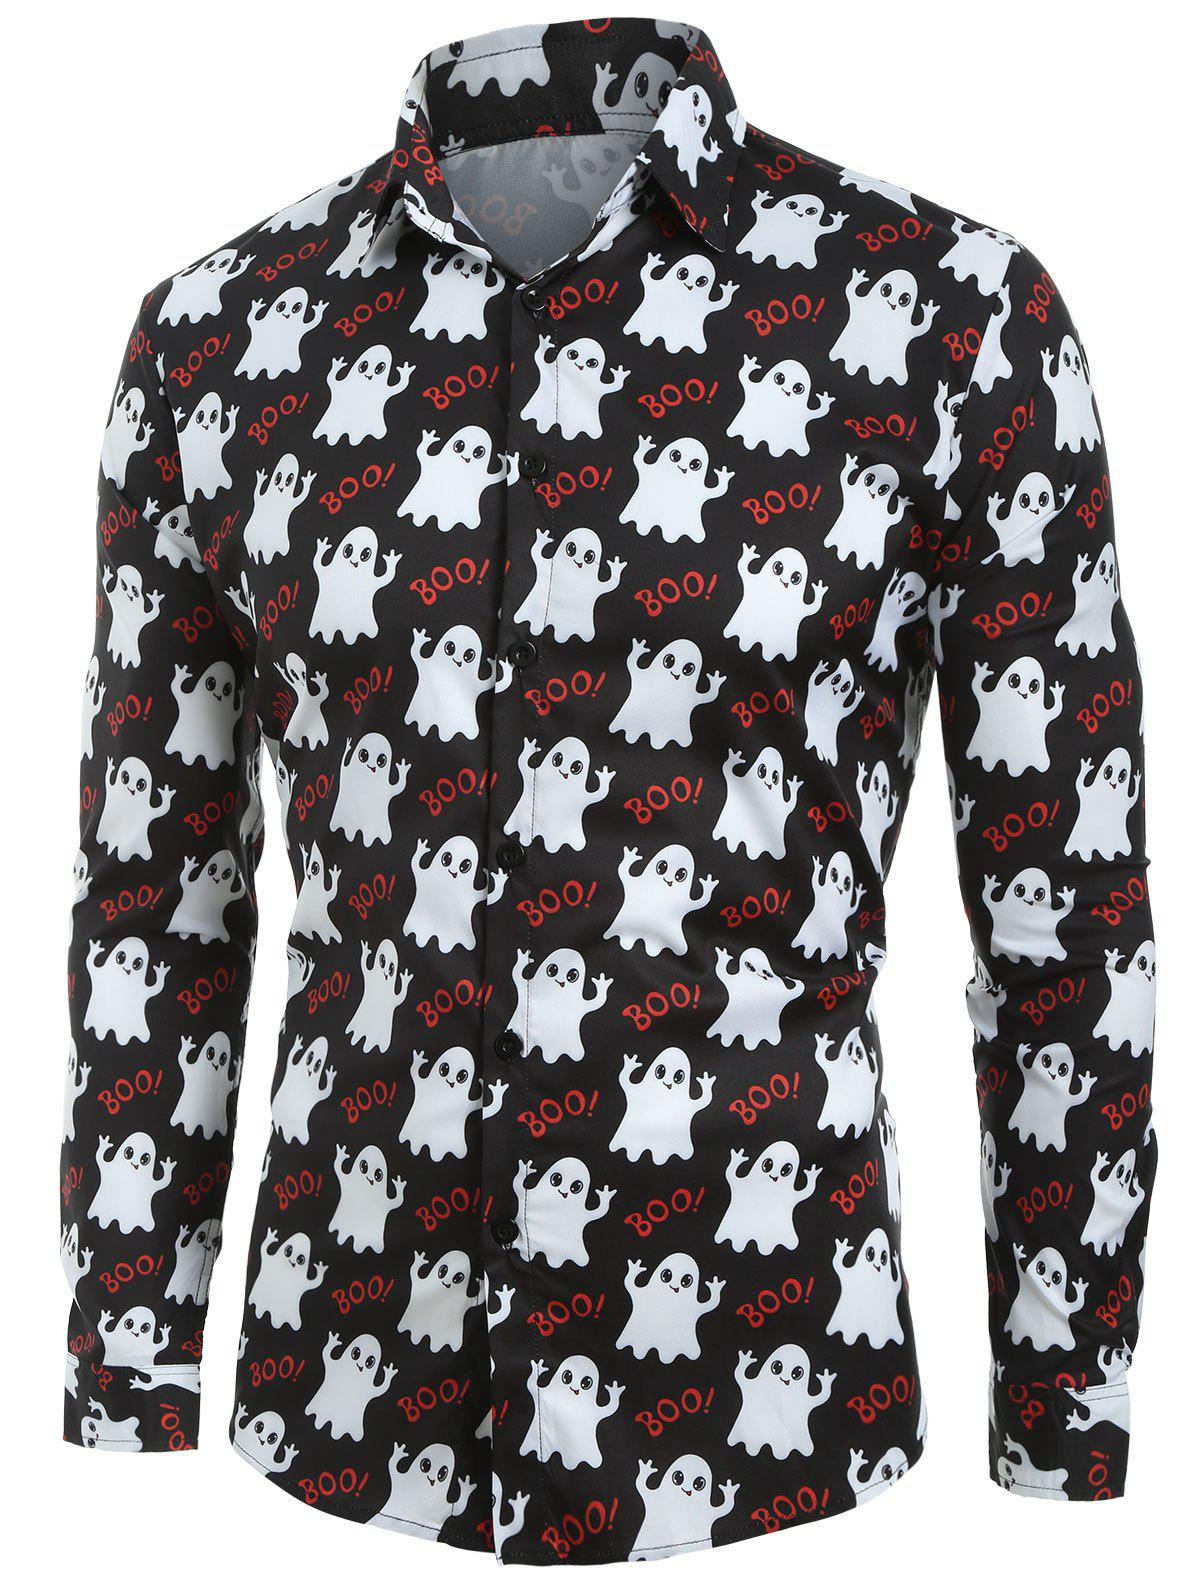 New Halloween Ghost Print Button Up Shirt